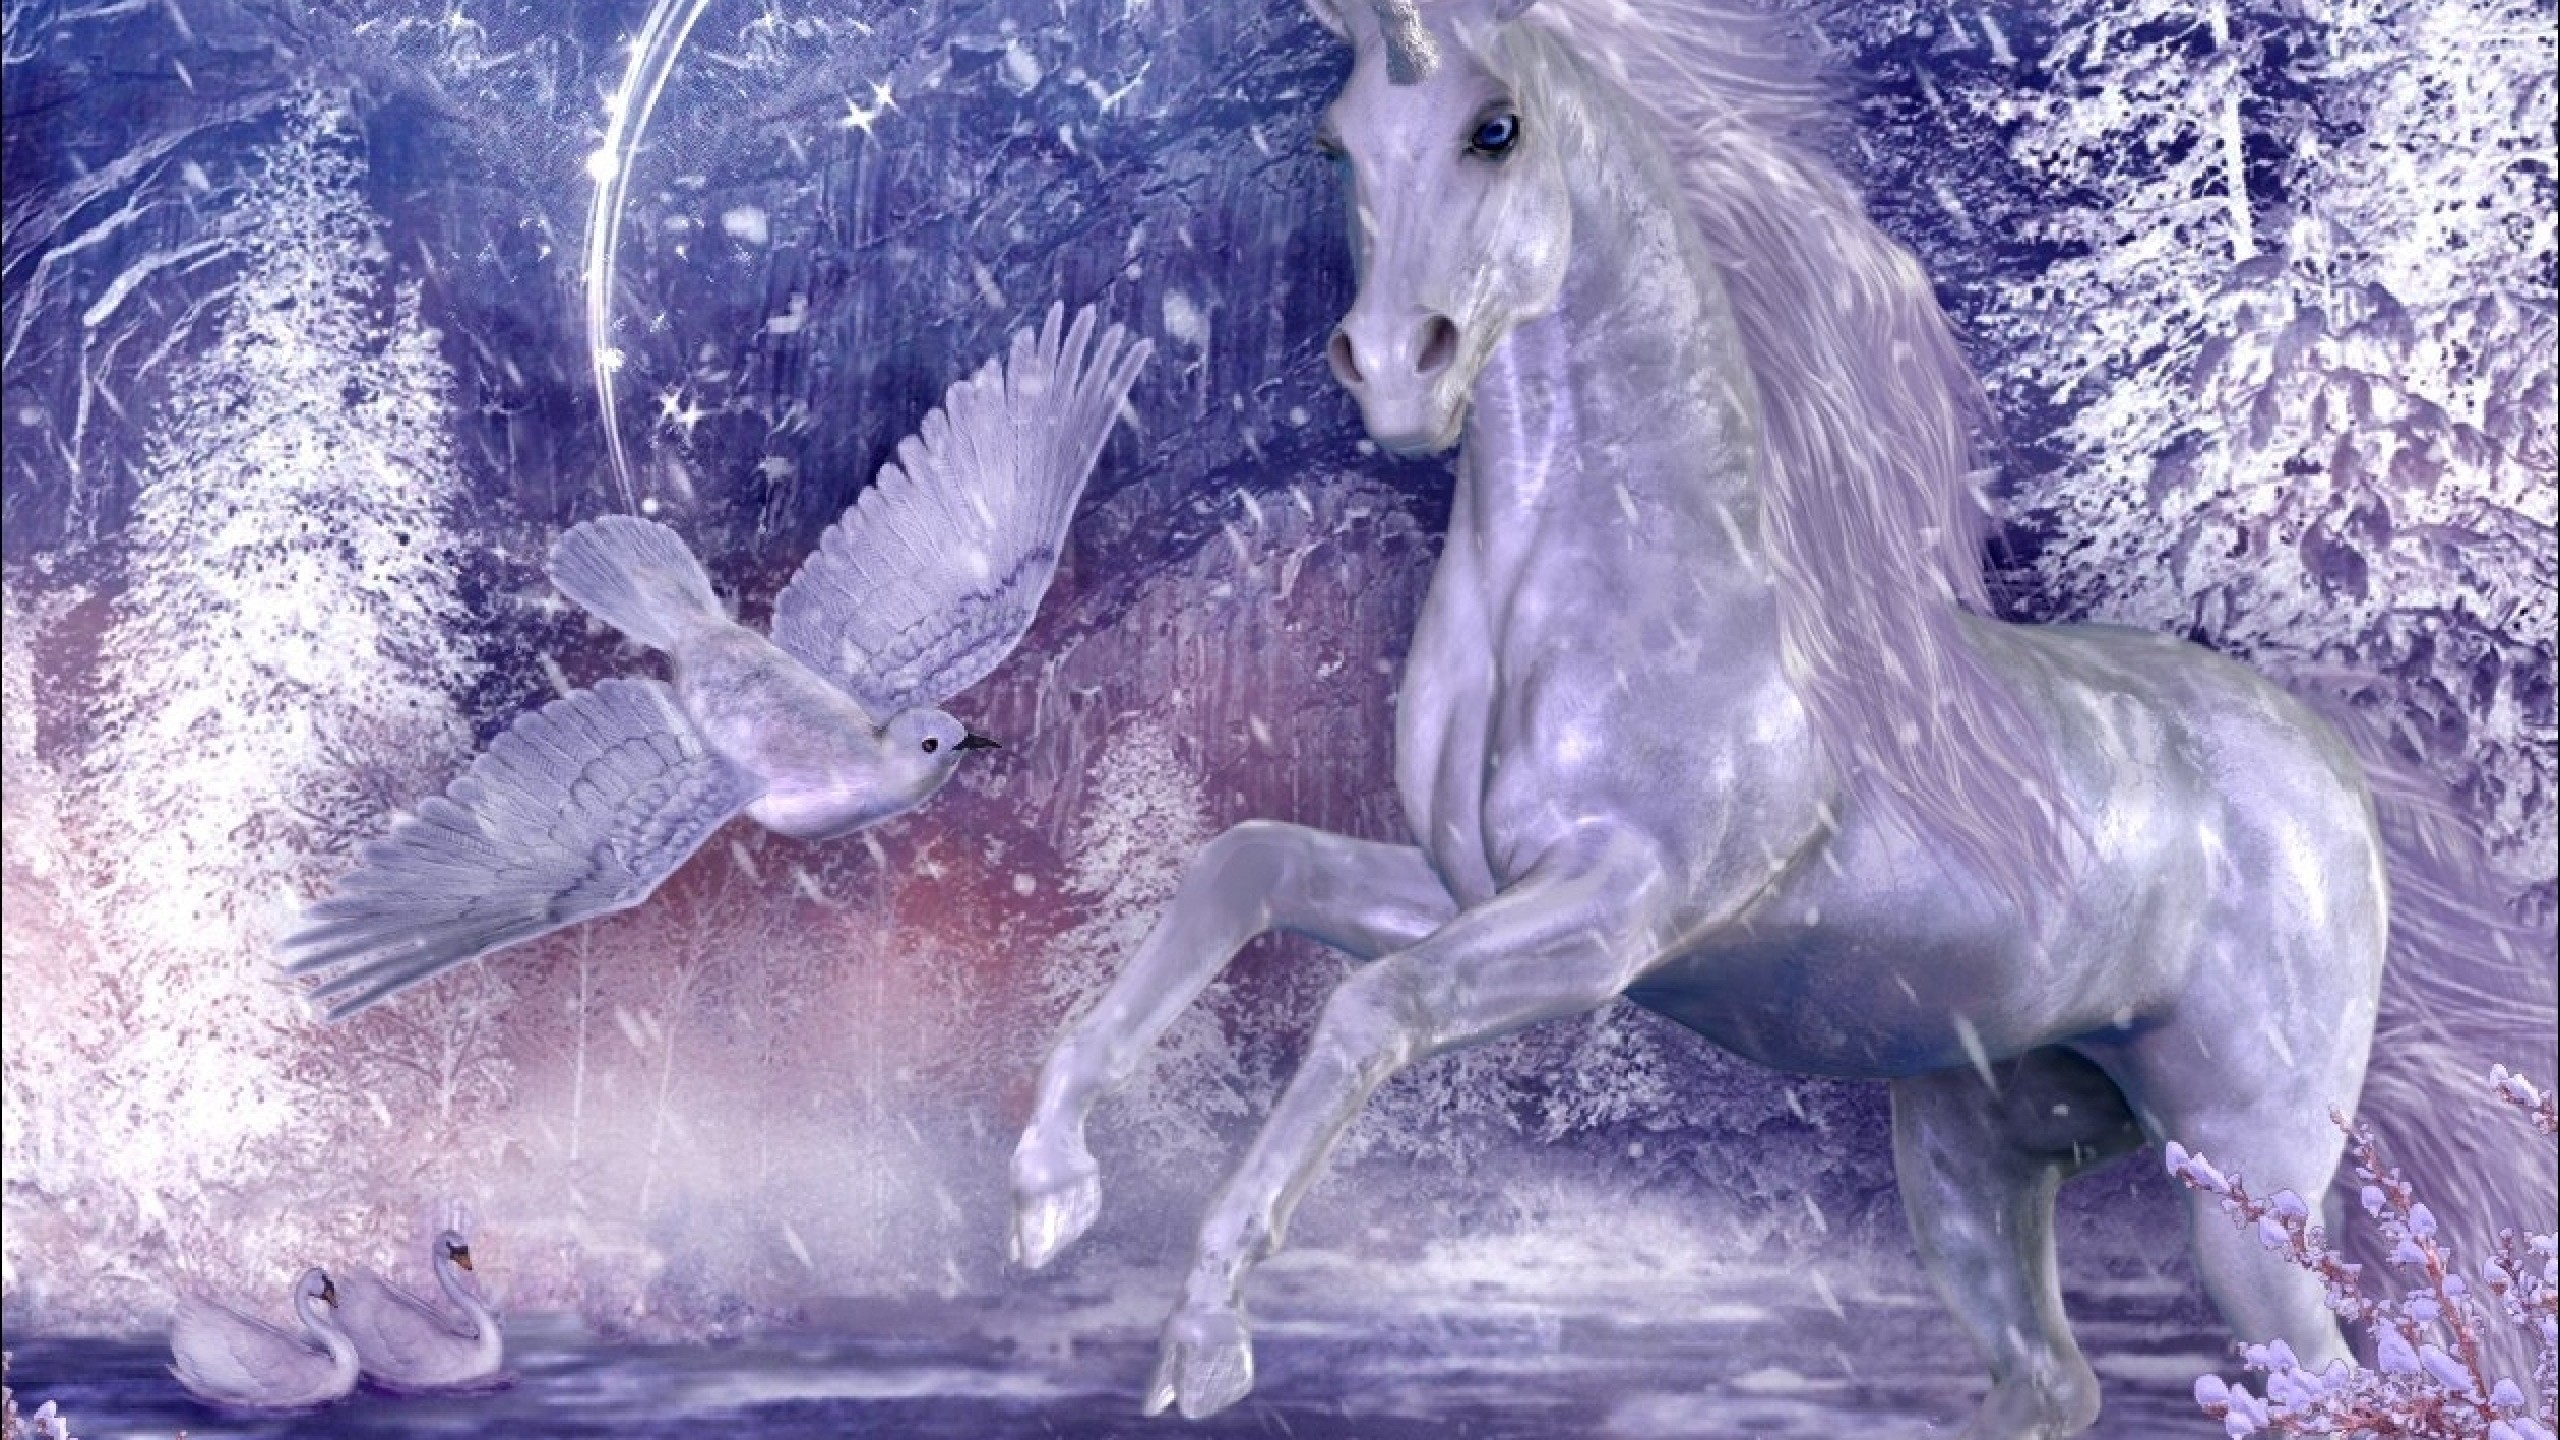 2560x1440 HD Unicorn Wallpaper and Desktop Background Back Wallpapers